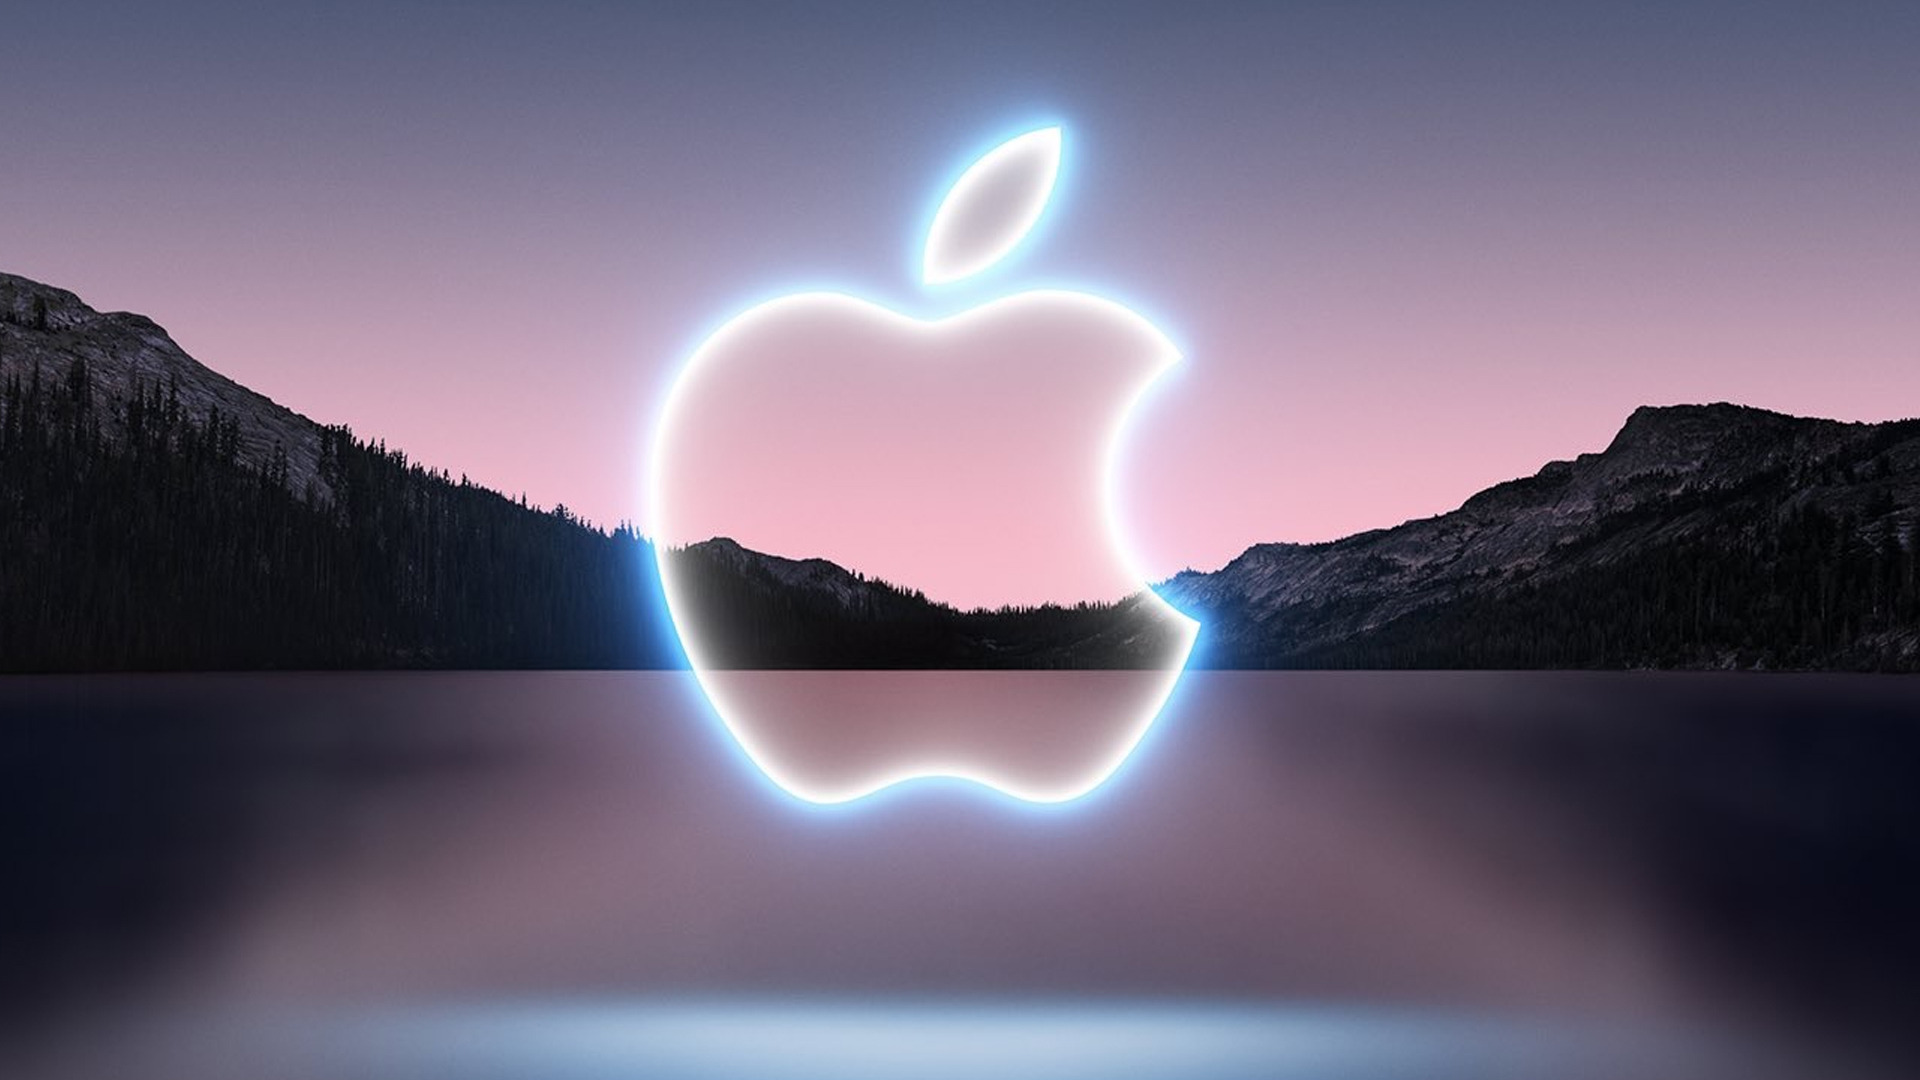 Apple, Iphone, Apple iPhone, Event, iPhone 13, September 2021, Apple Watch Series 7, California Streaming